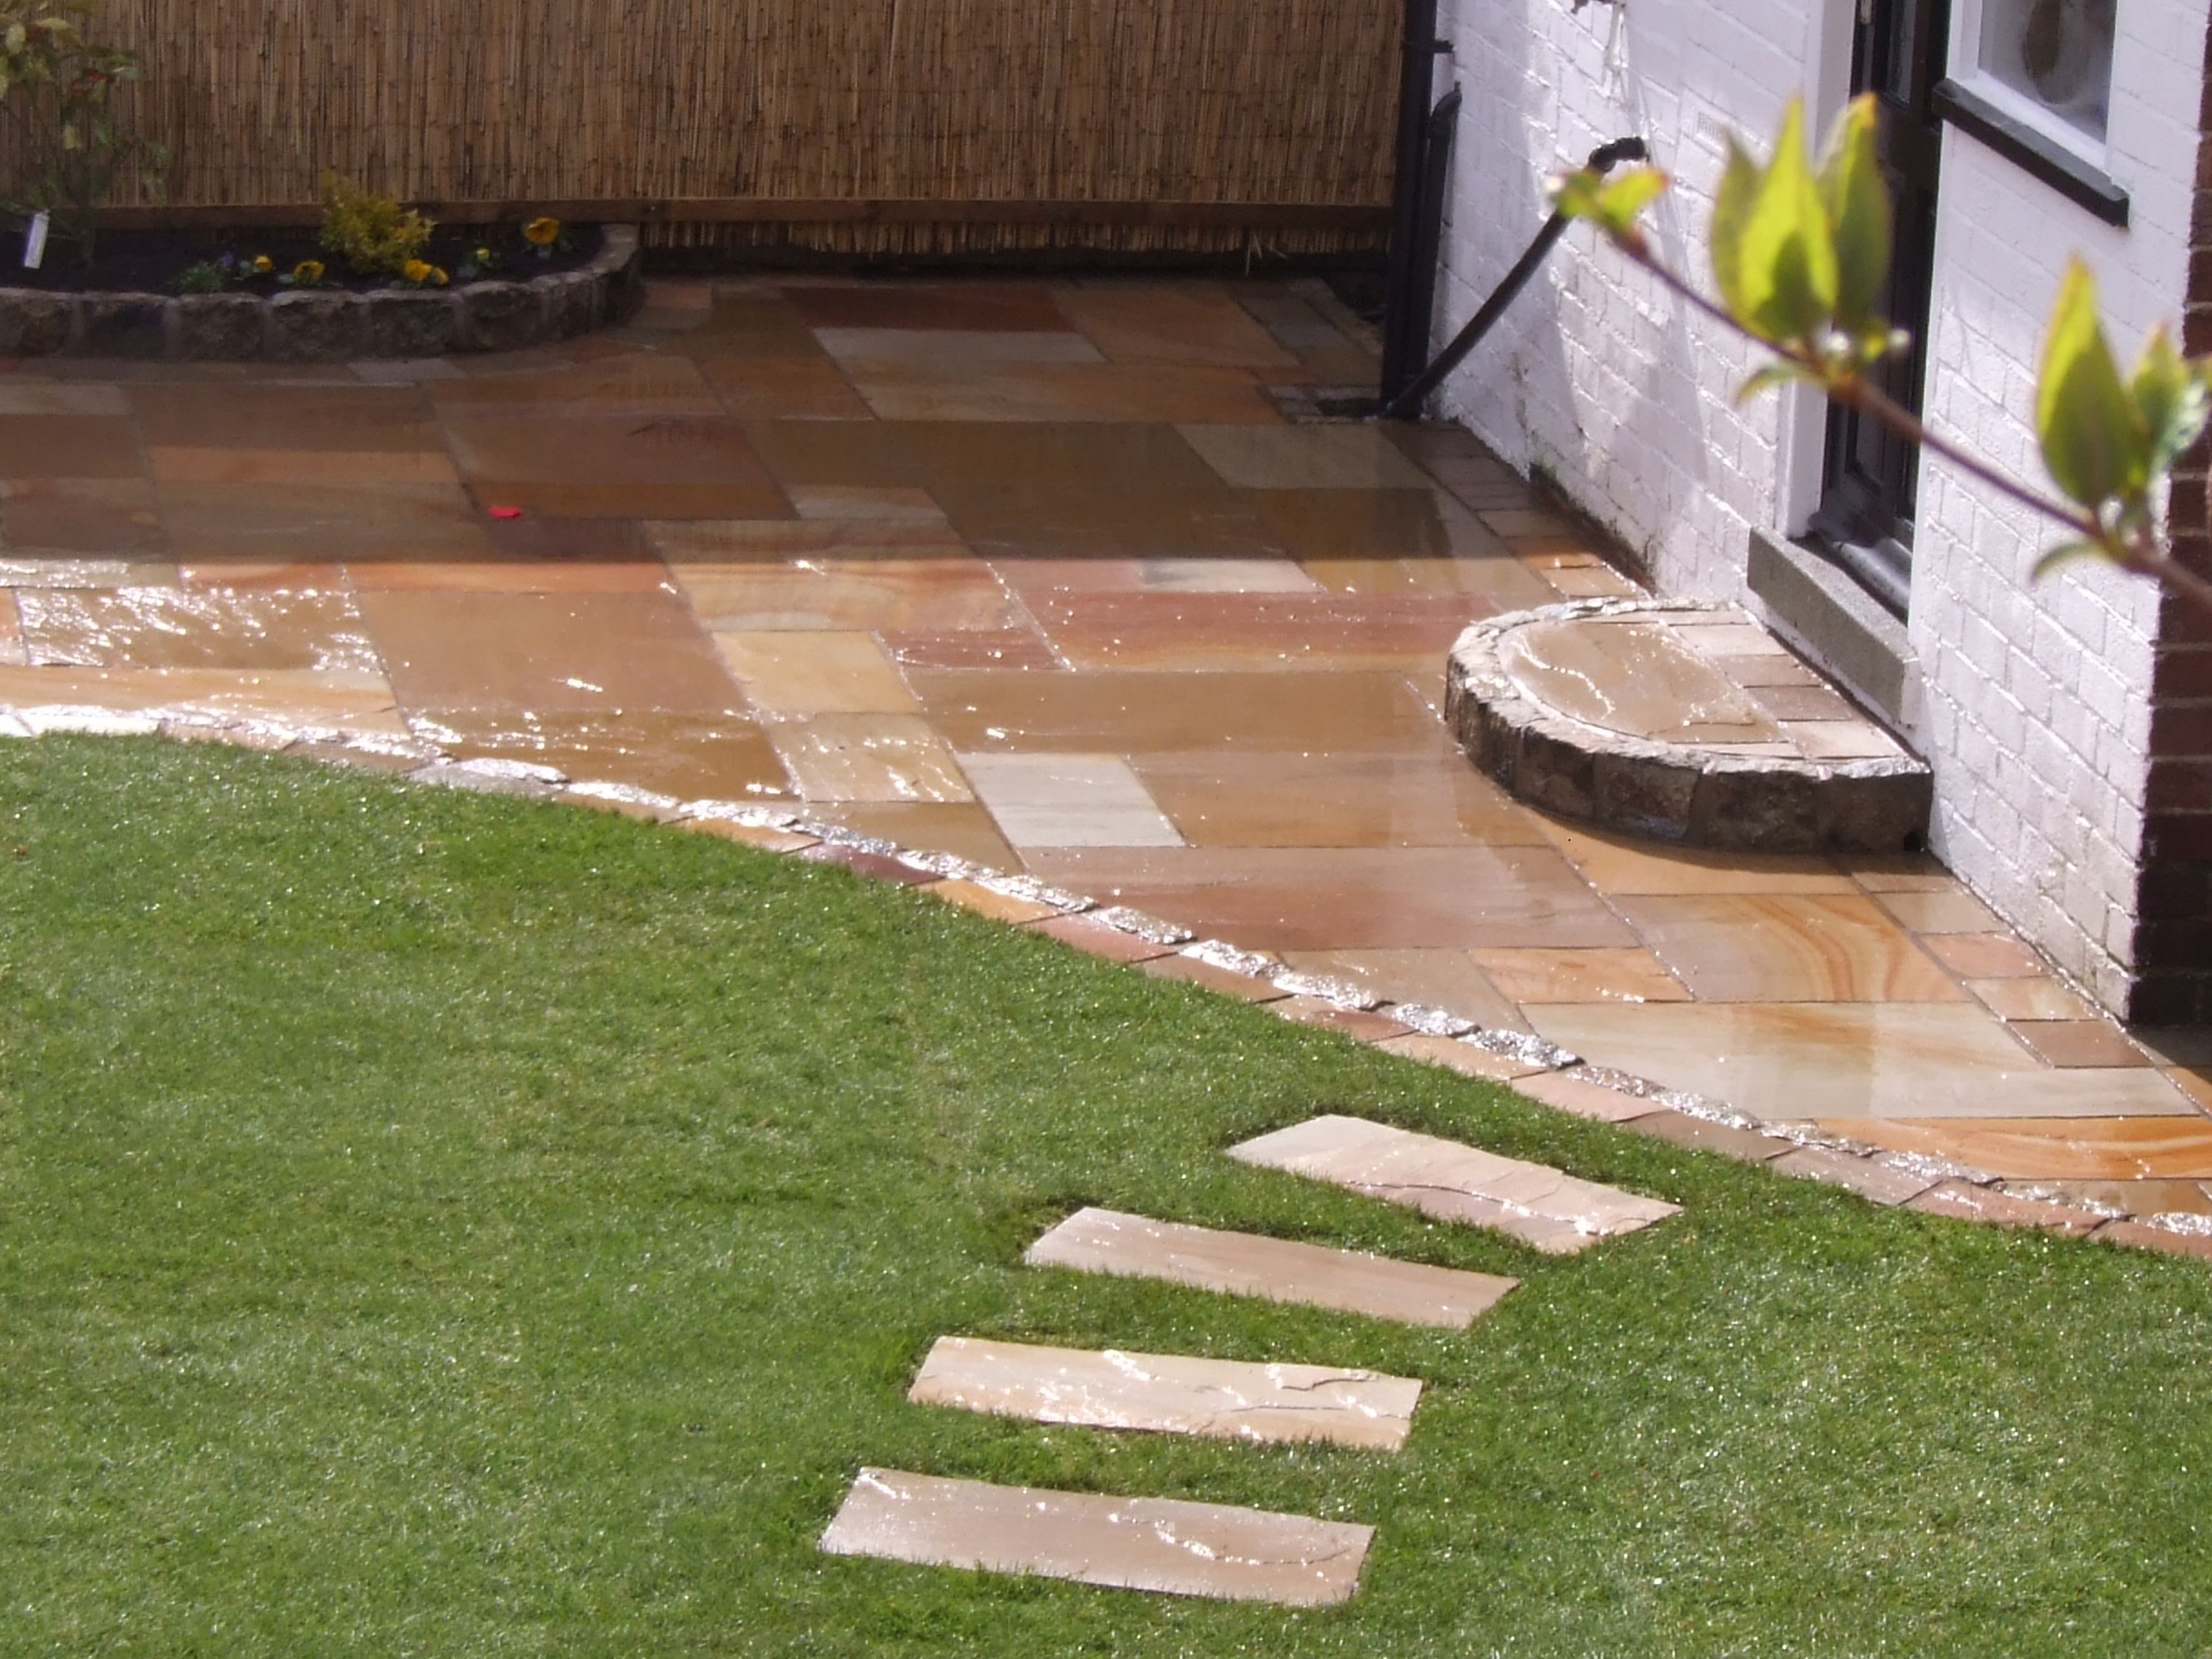 Landscaping Liverpool Another View Of Stepping Stones And Natural Stone Patio Landscaping Liverpool Http W Garden Paving Patio Stones Patio And Garden